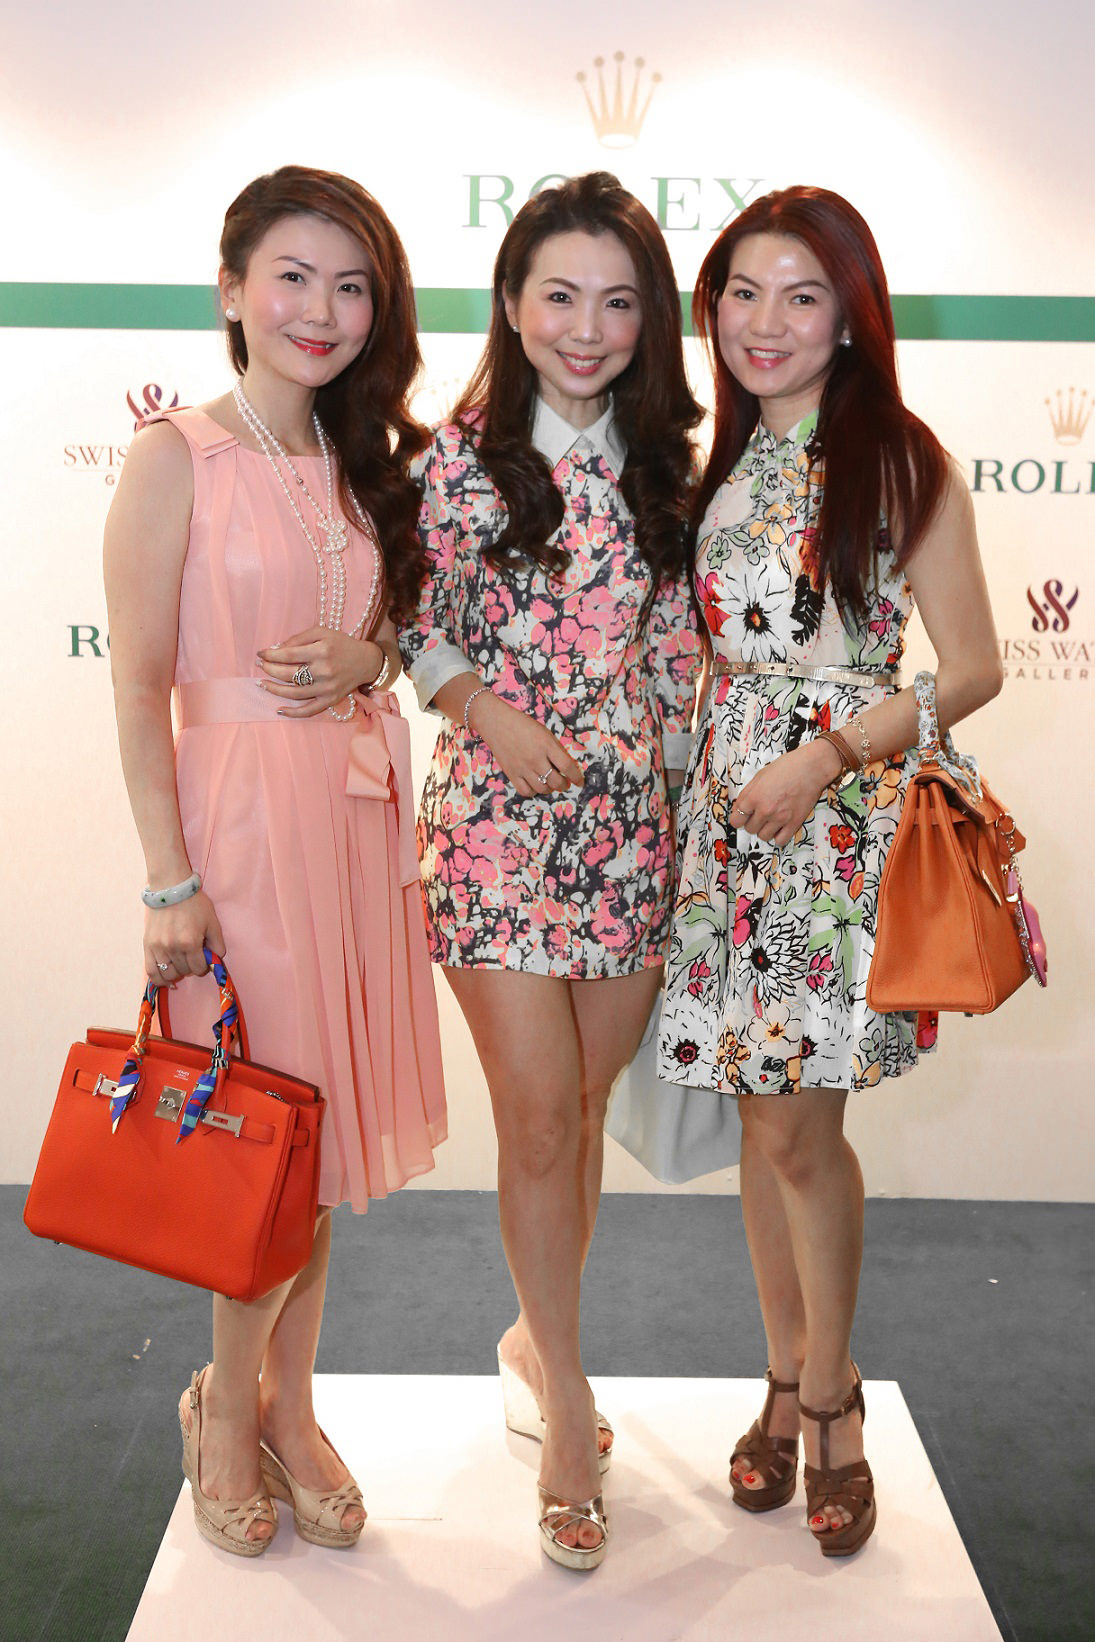 L-R (Carrie Gan, Pauline Gan & Shereen Low)